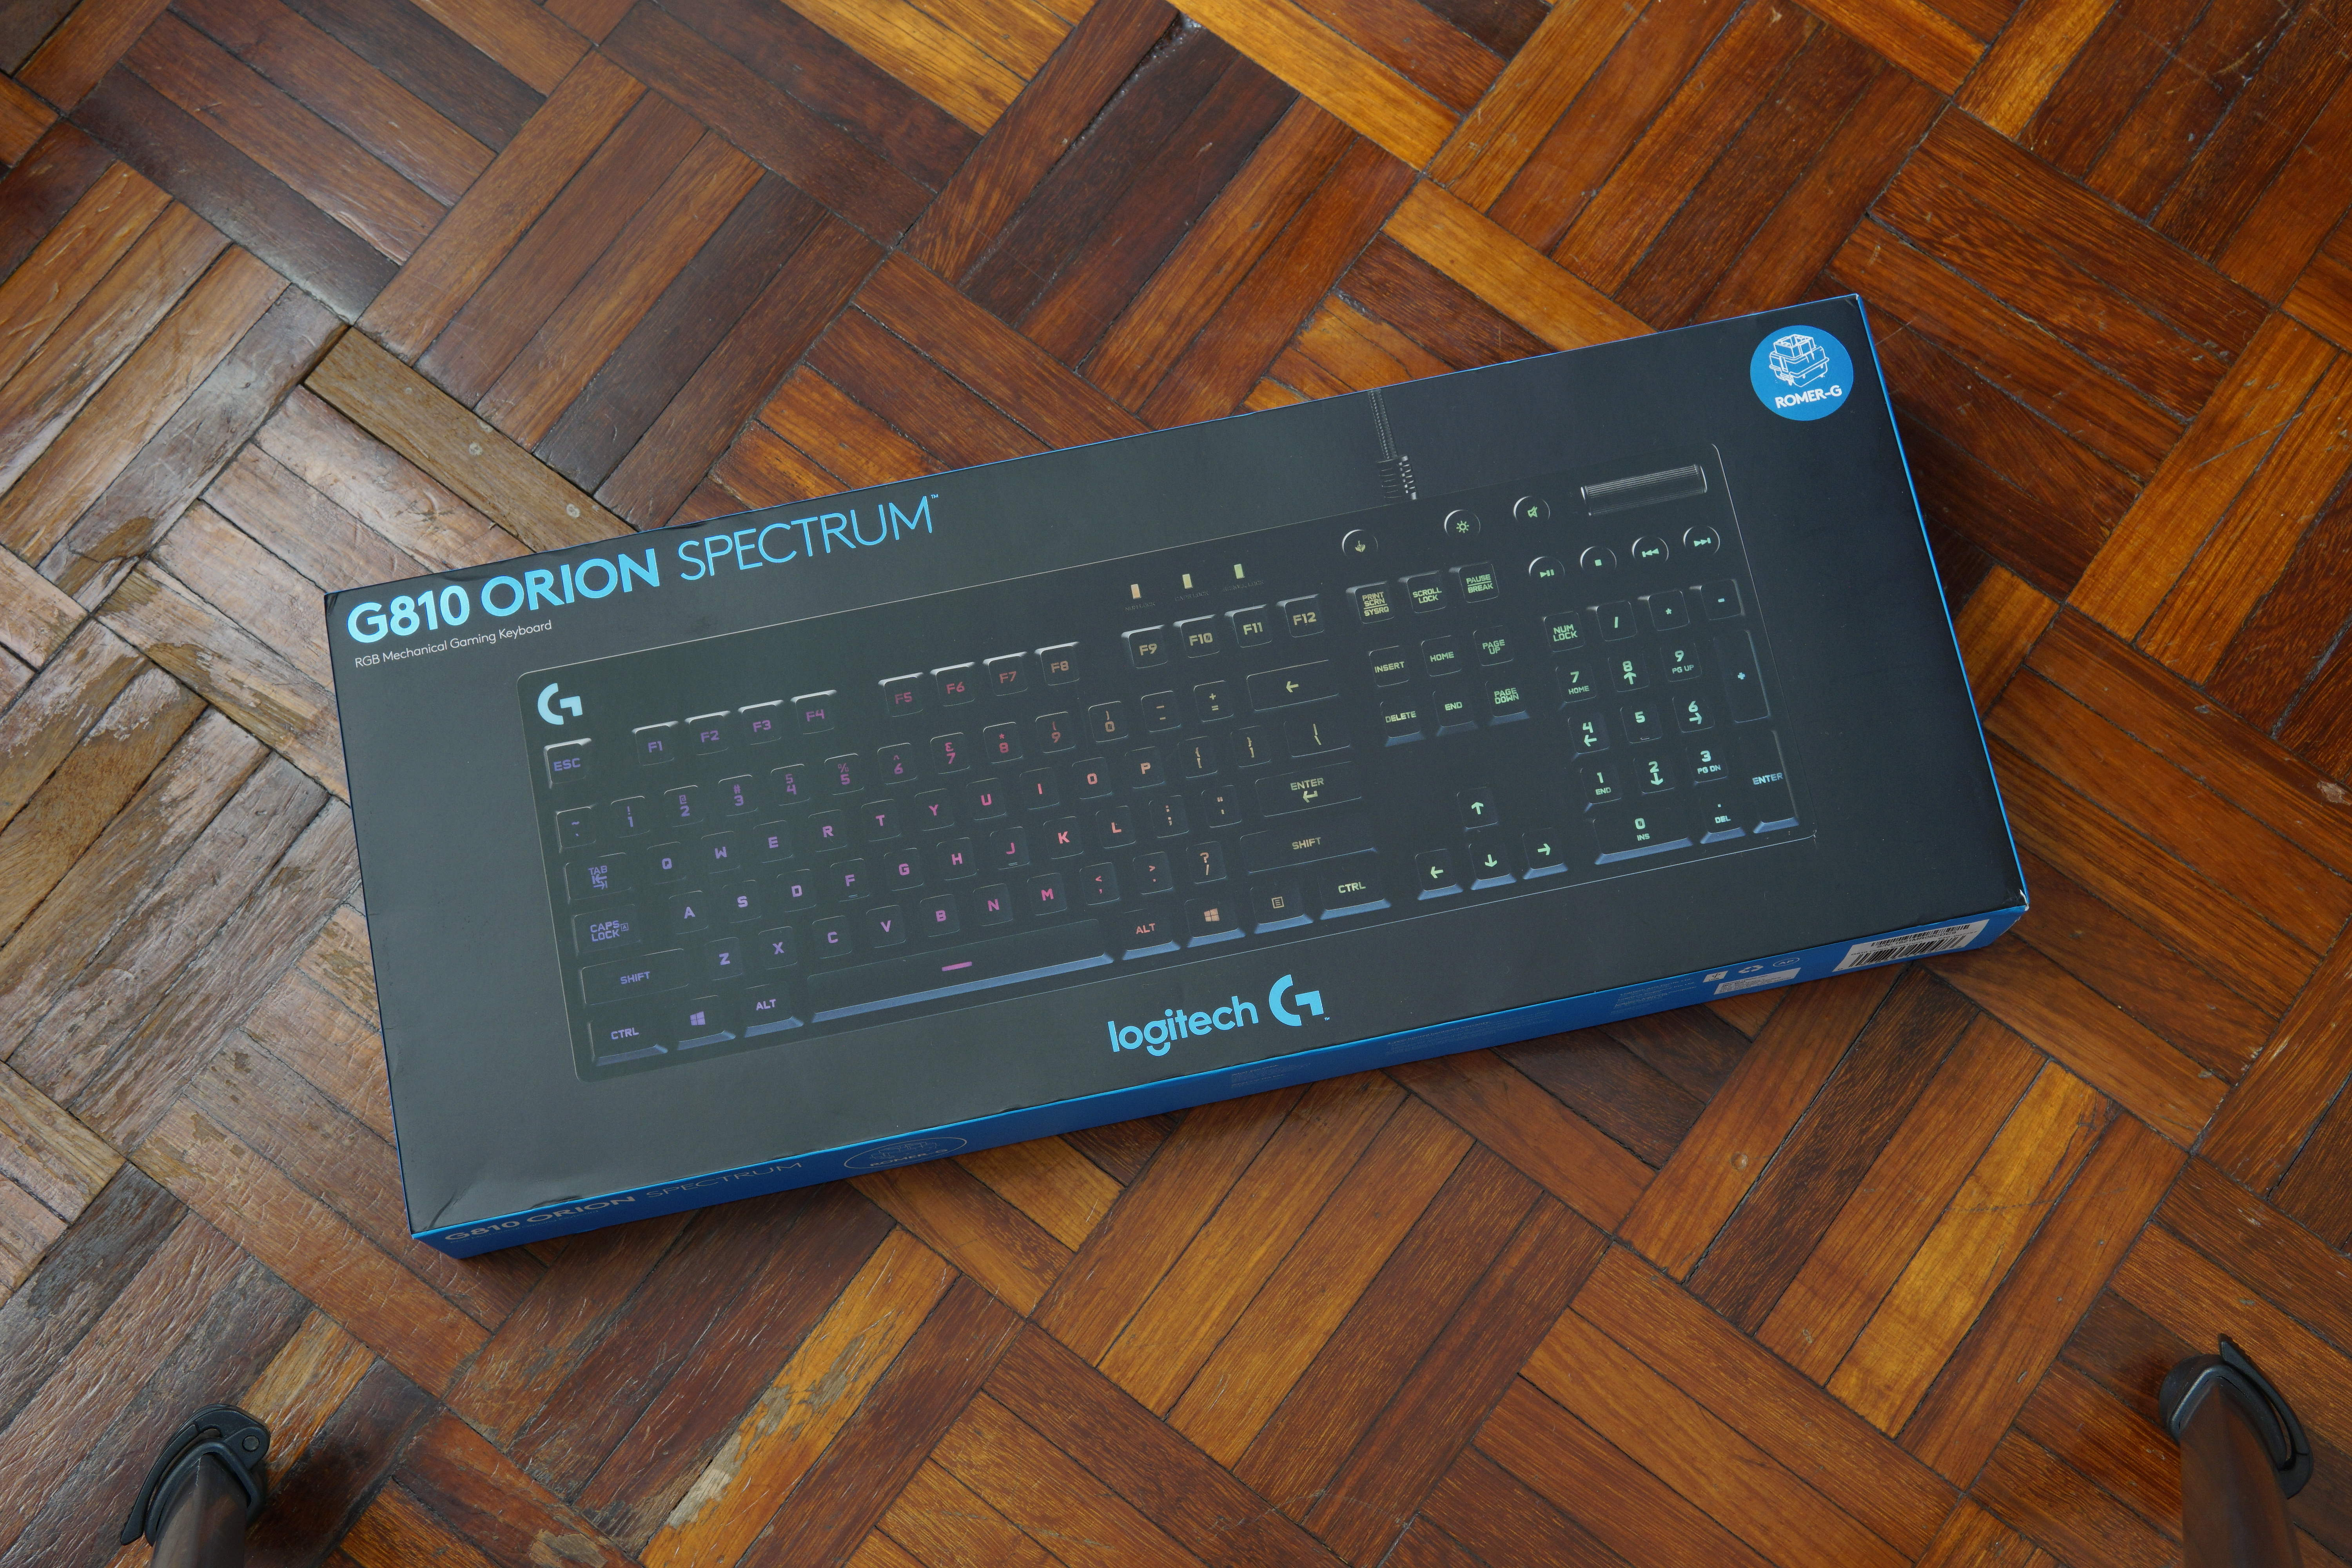 Logitech G810 Orion Spectrum Review Wonderful But Only If You Keyboard Gaming Corsair K70 Rgb Red Switch Used Like The Switches Member Reviews Linus Tech Tips